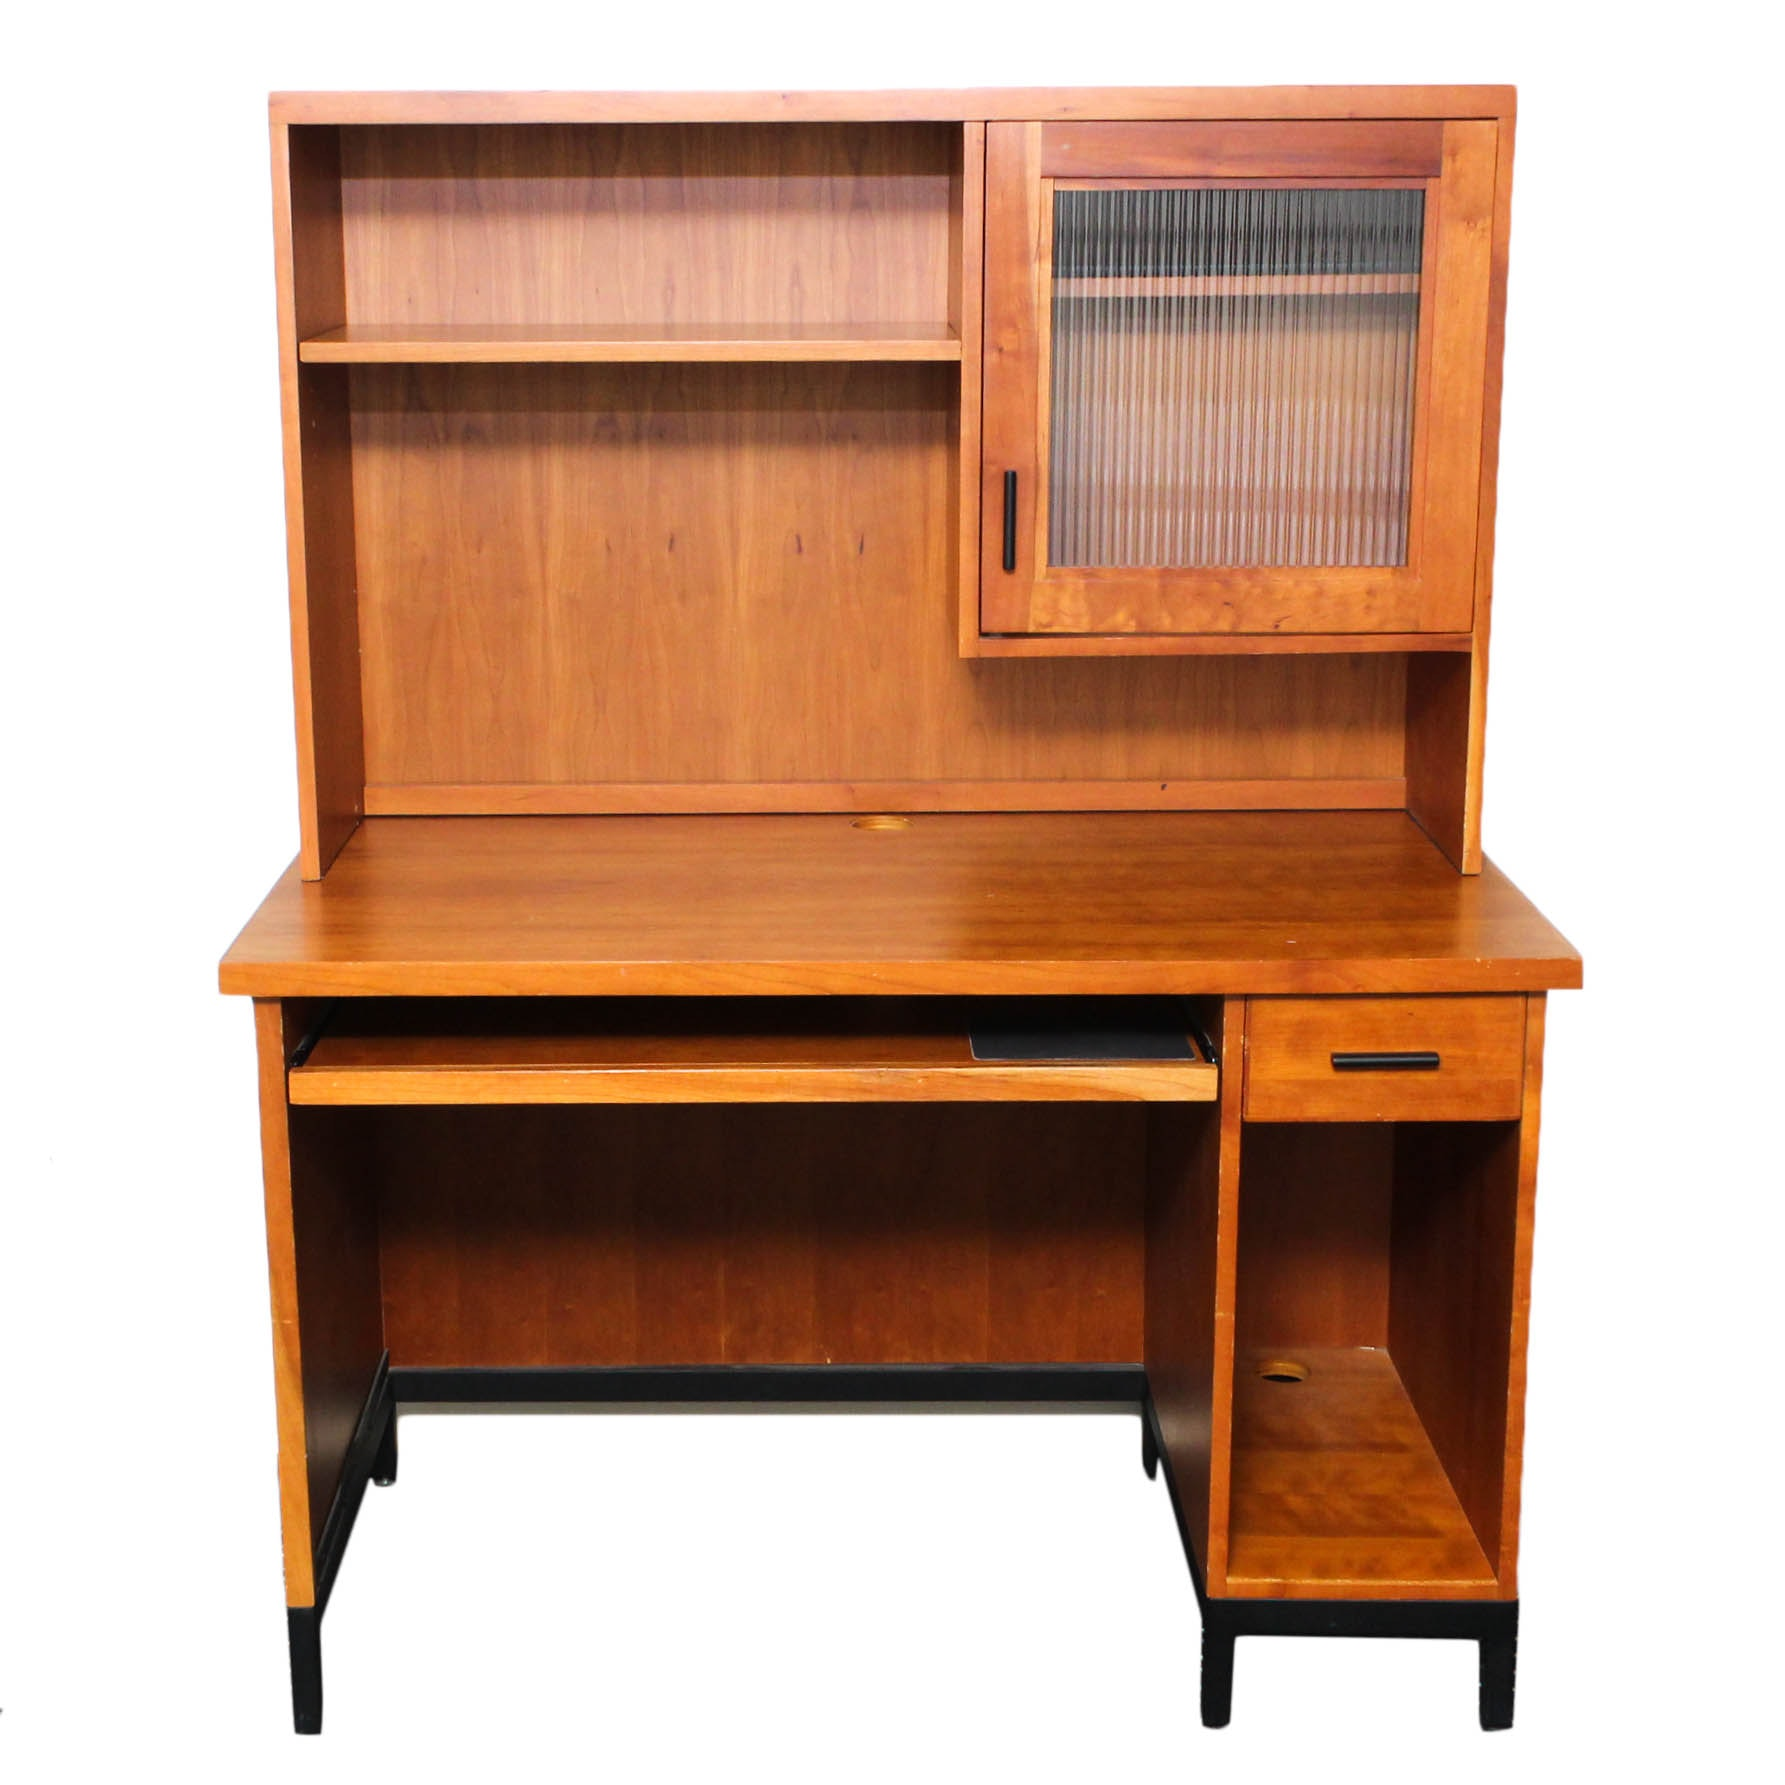 Contemporary Hardwood Veneer Computer Desk with Hutch